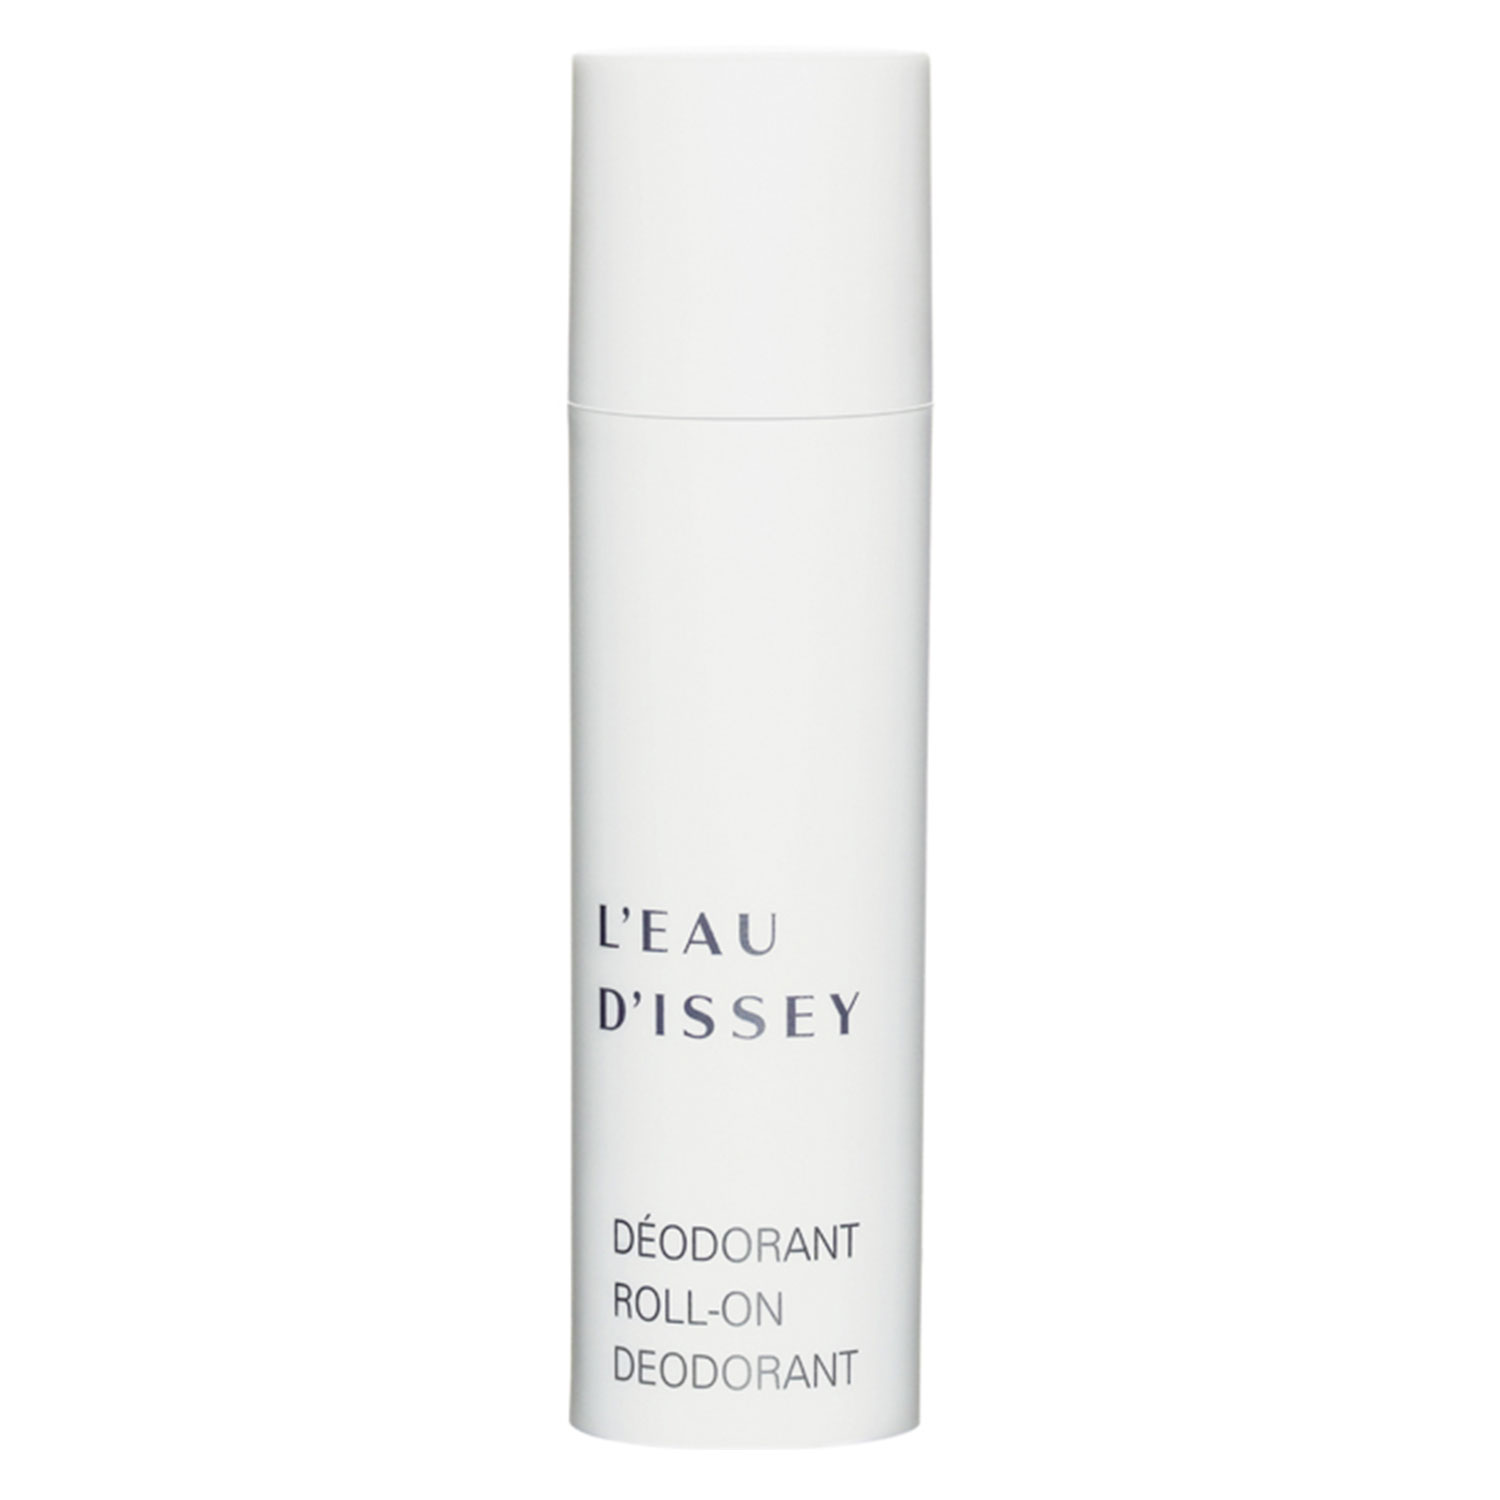 L'Eau D'Issey - Déodorant Roll-On